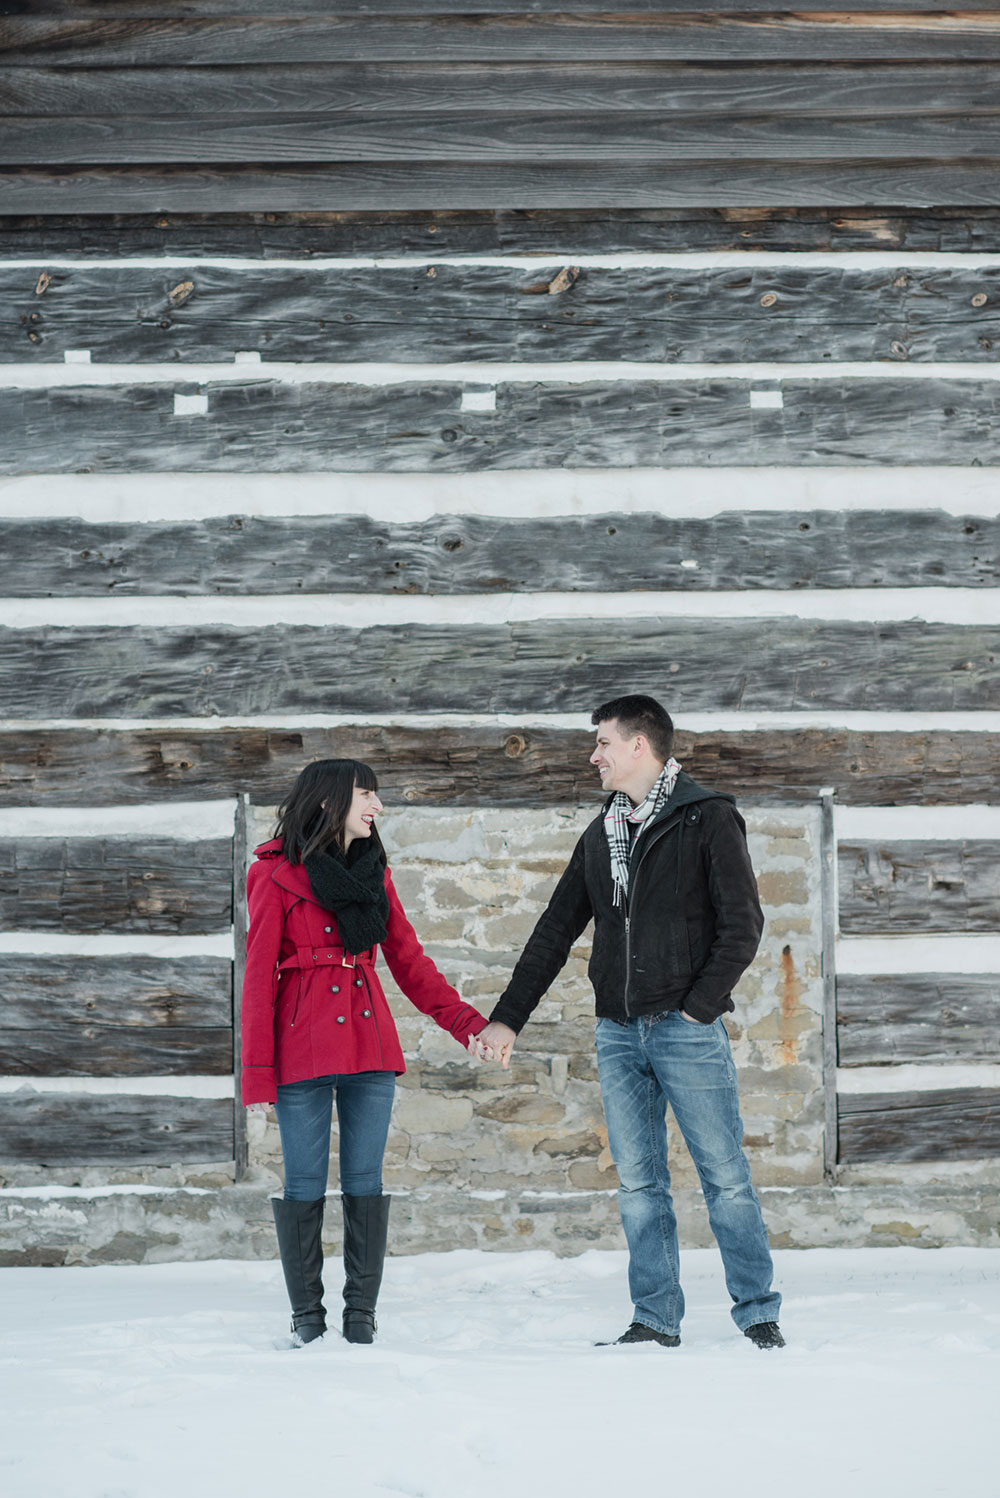 Balls-Falls-Niagara-engagement-session-Vineyard-Bride-Photography-by-Love-Always-Photography-006.jpg